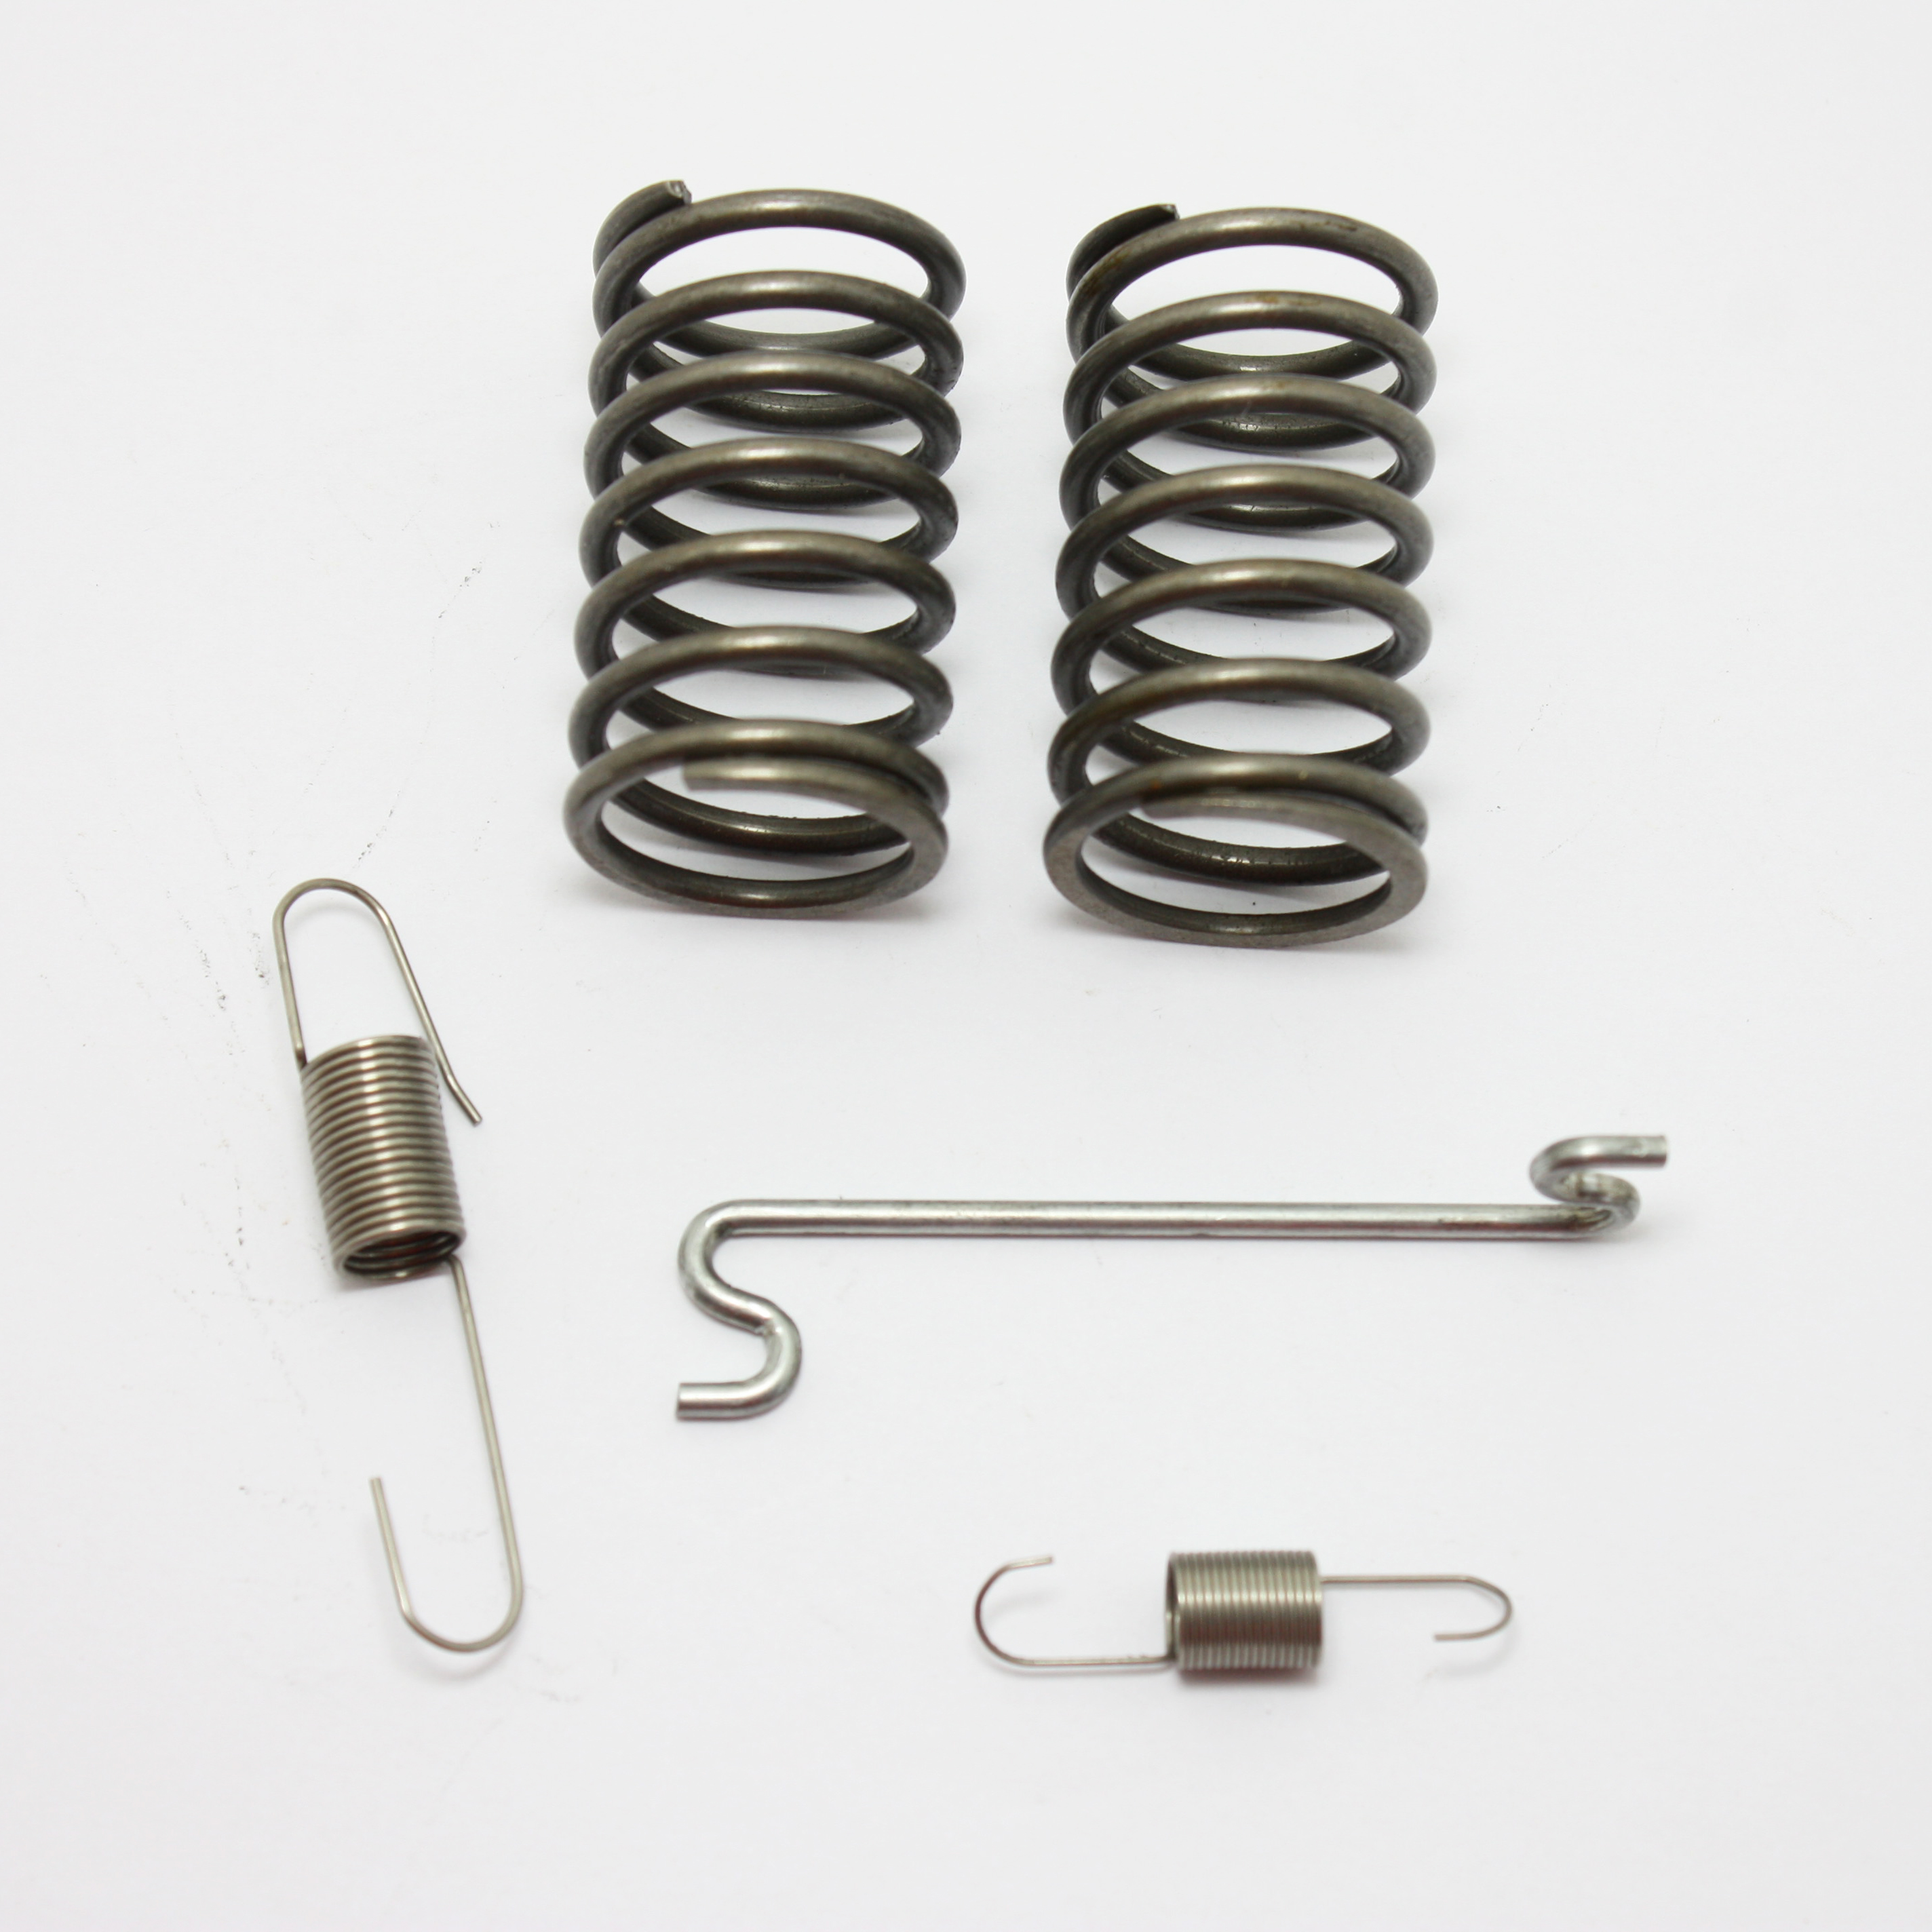 Throttle Spring gouverneur Spring /& Gouverneur Rod Fits ROBIN EY20 Moteur EY15